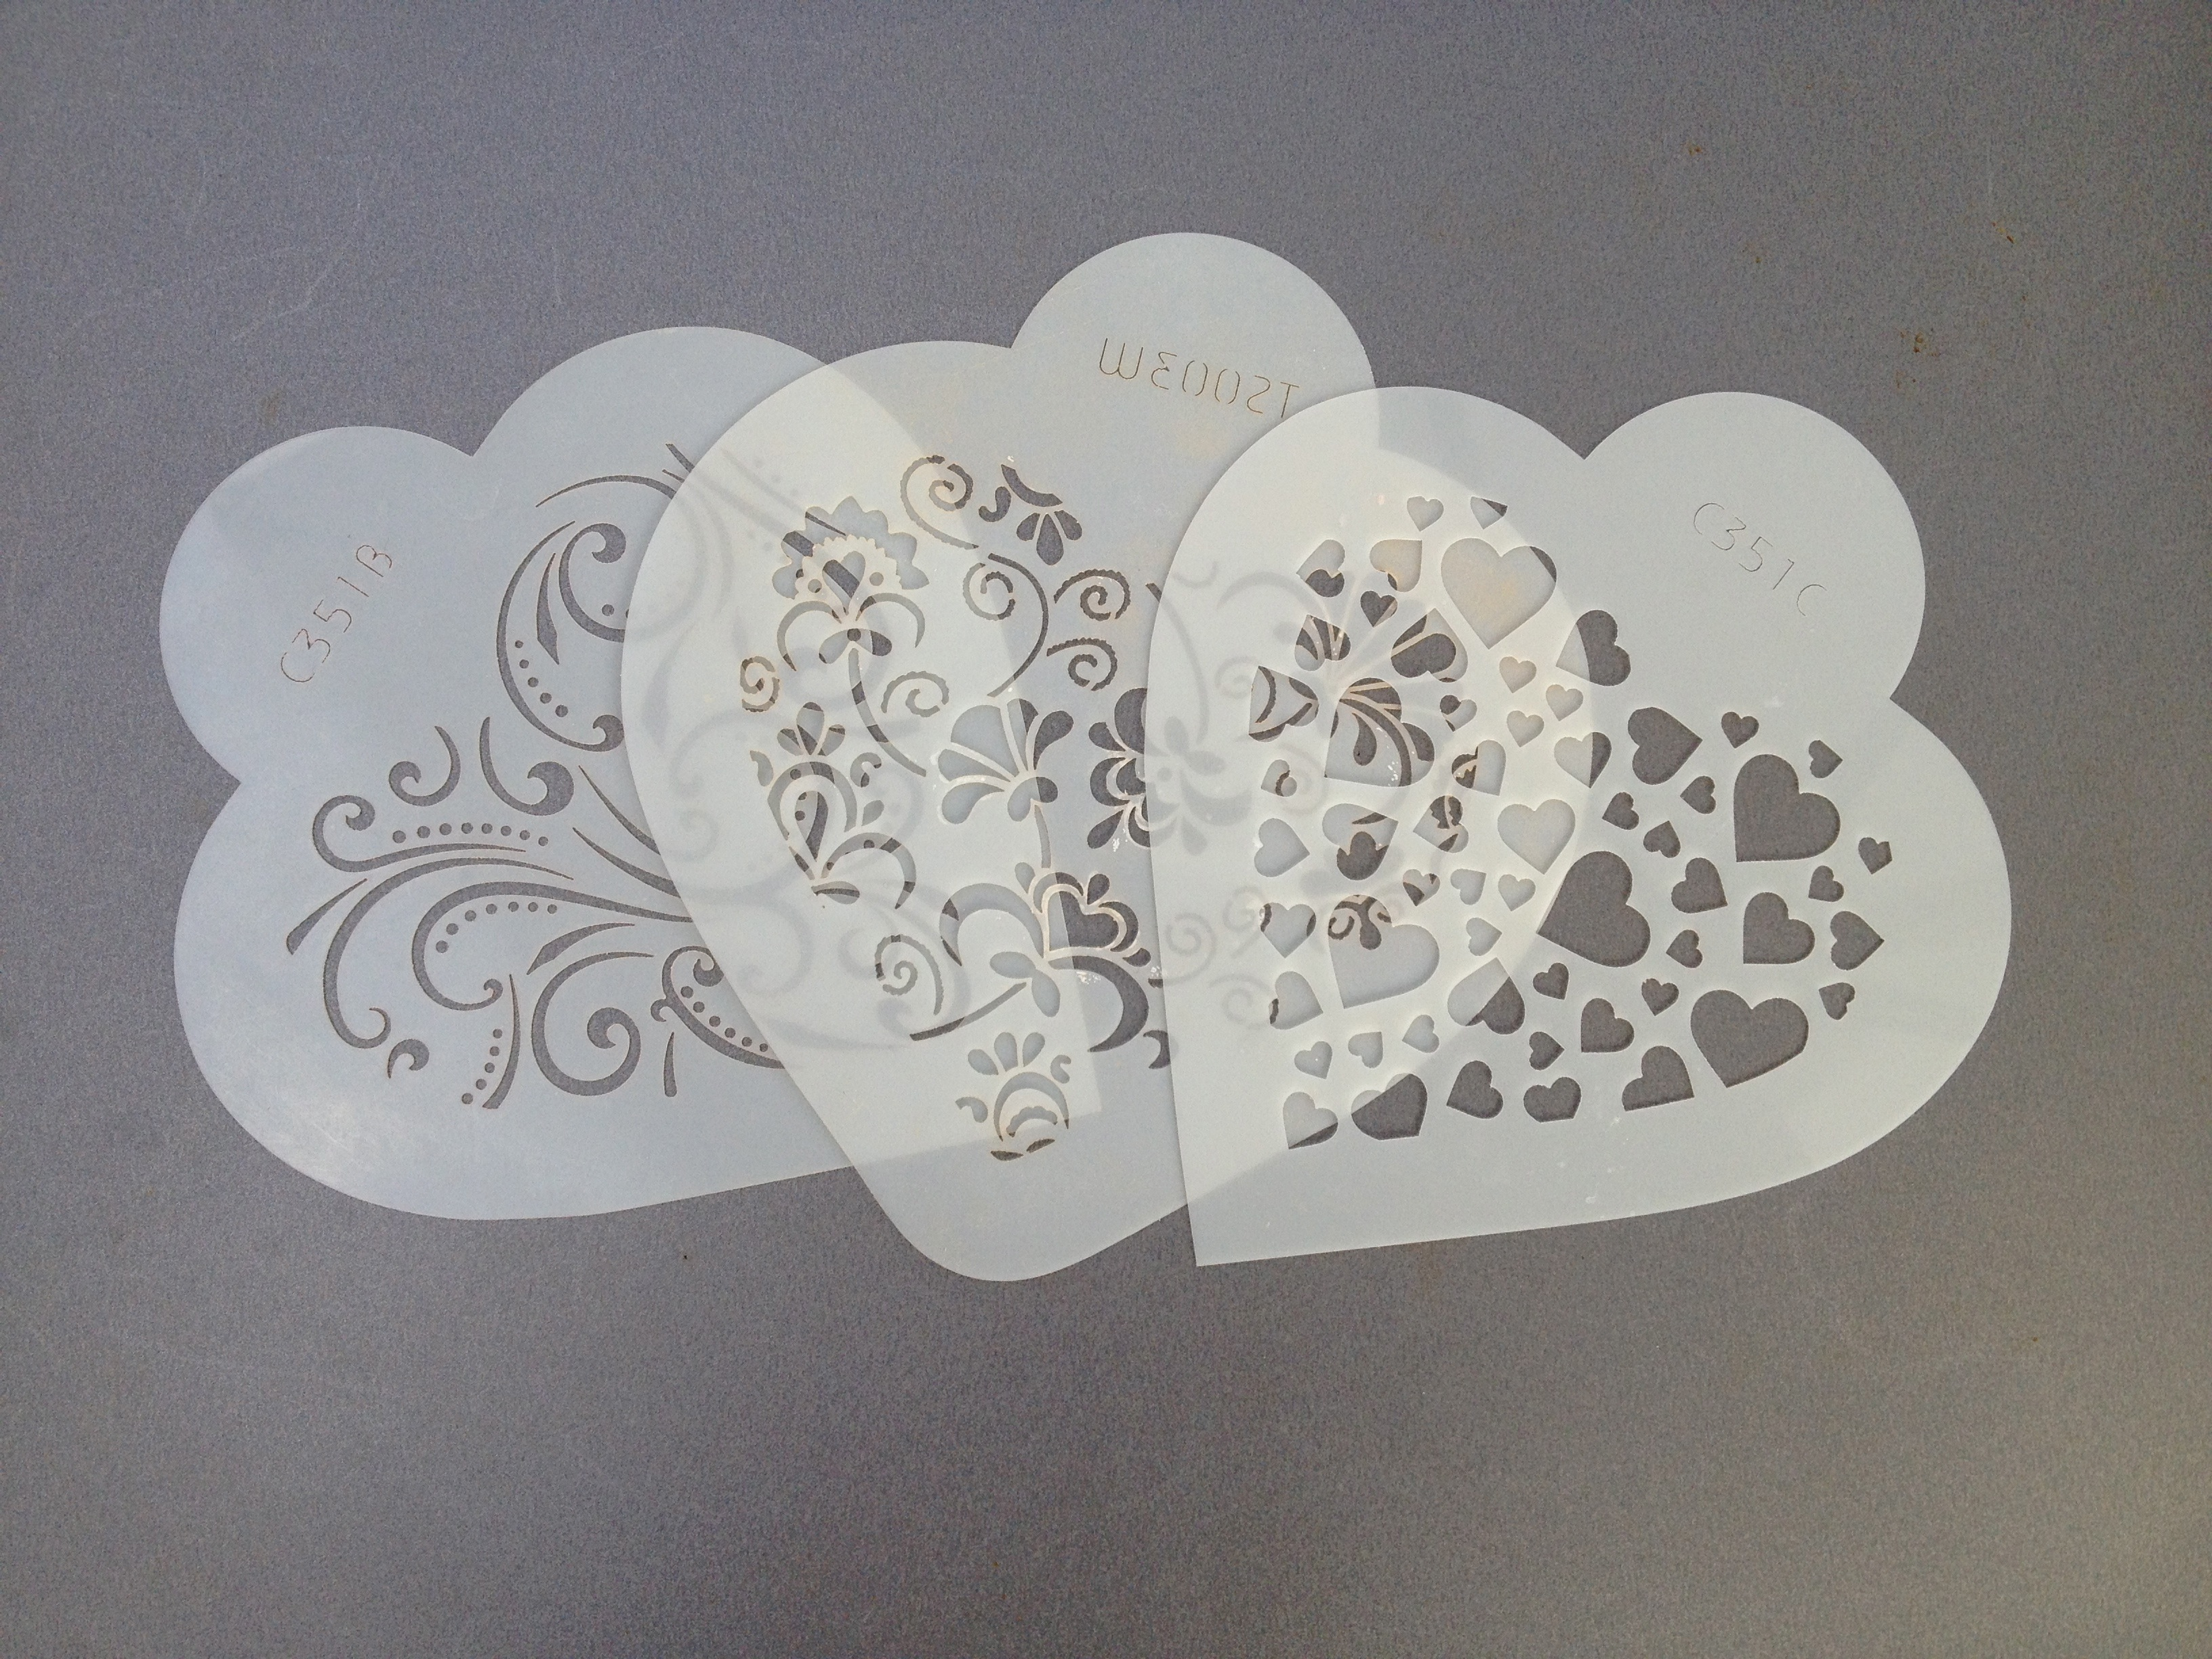 Cake Stencil Designs Free : 301 Moved Permanently